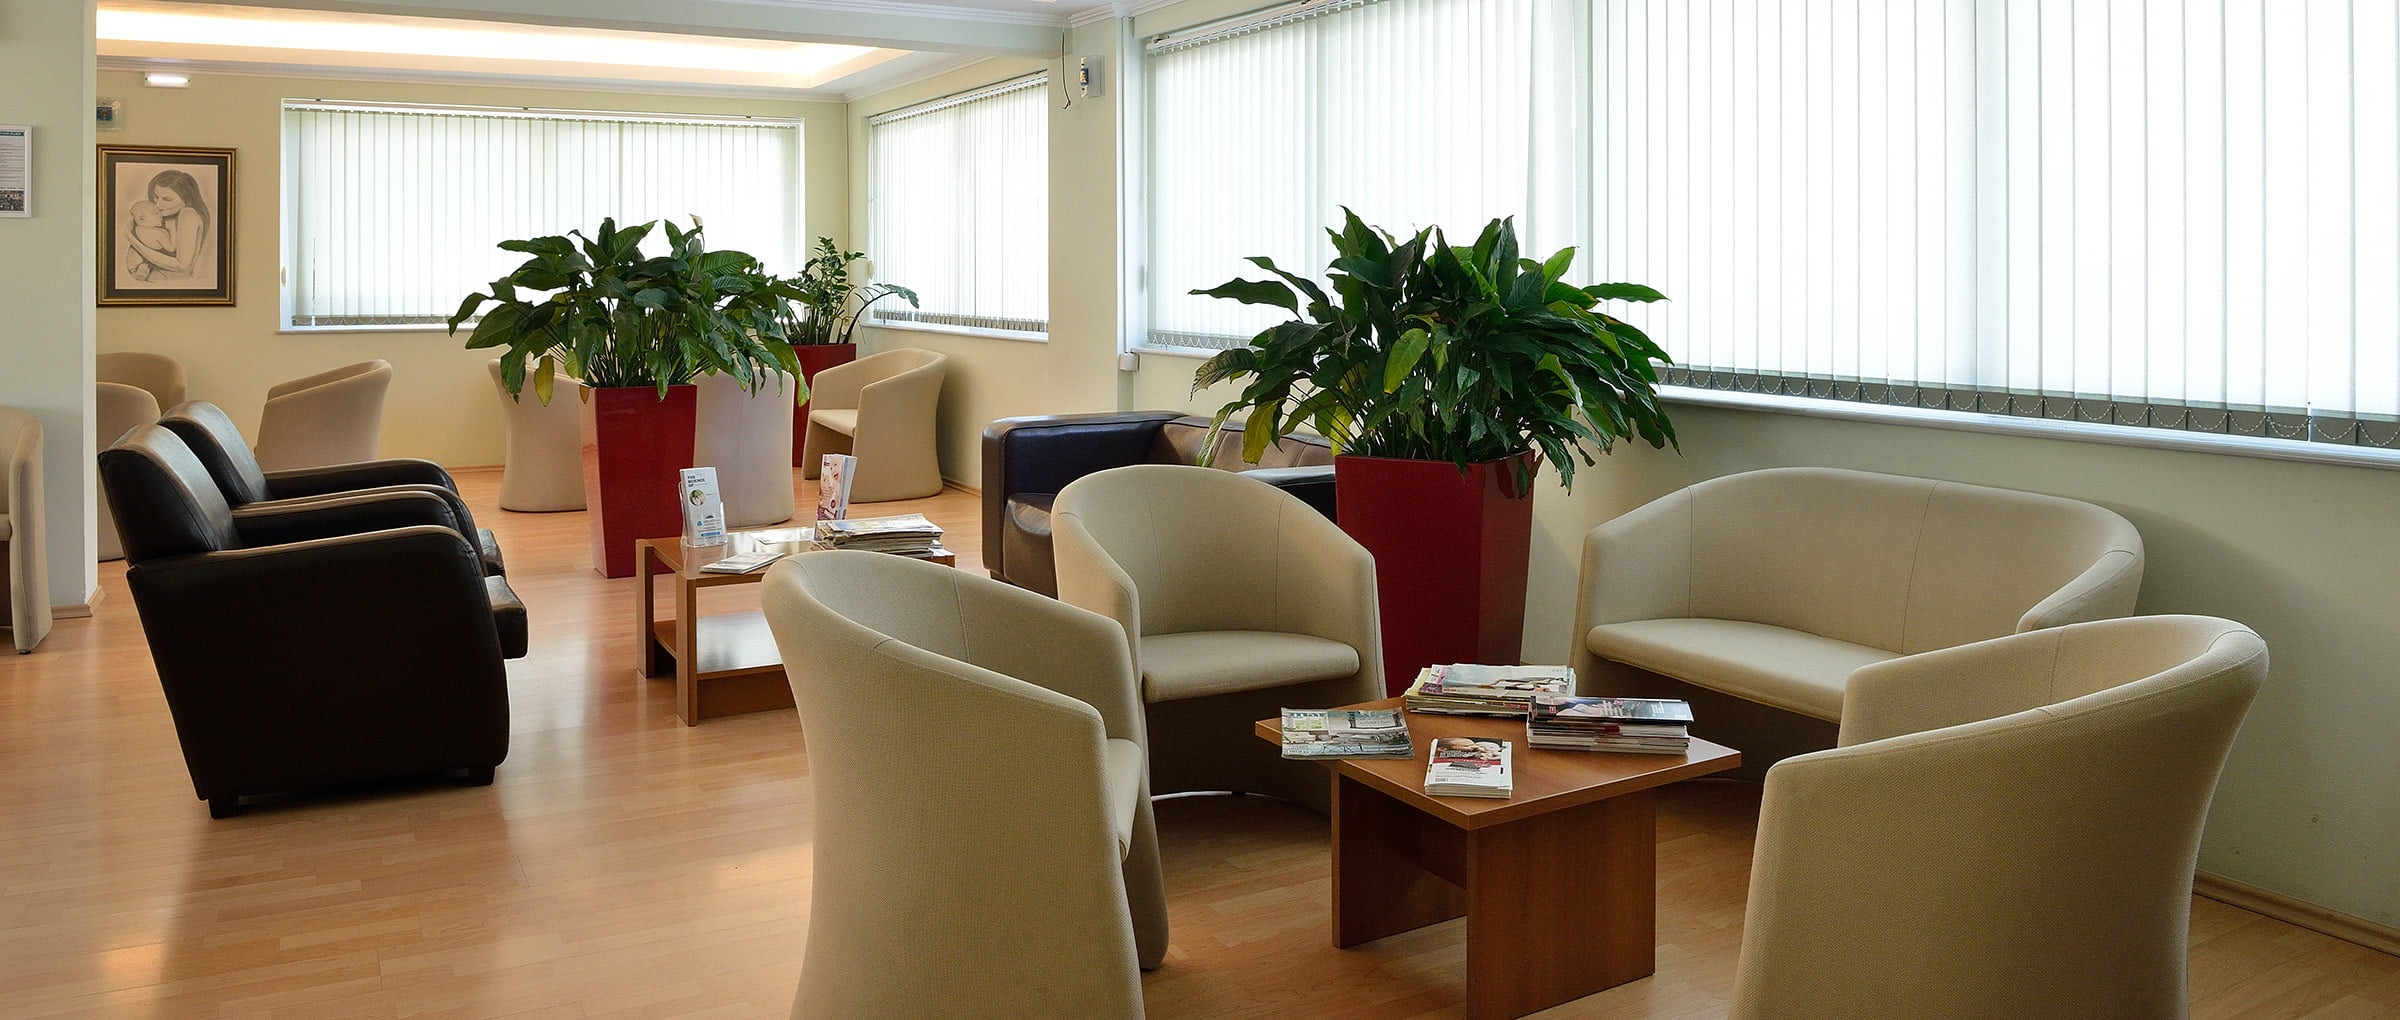 Mediterranean Fertility Center waiting area